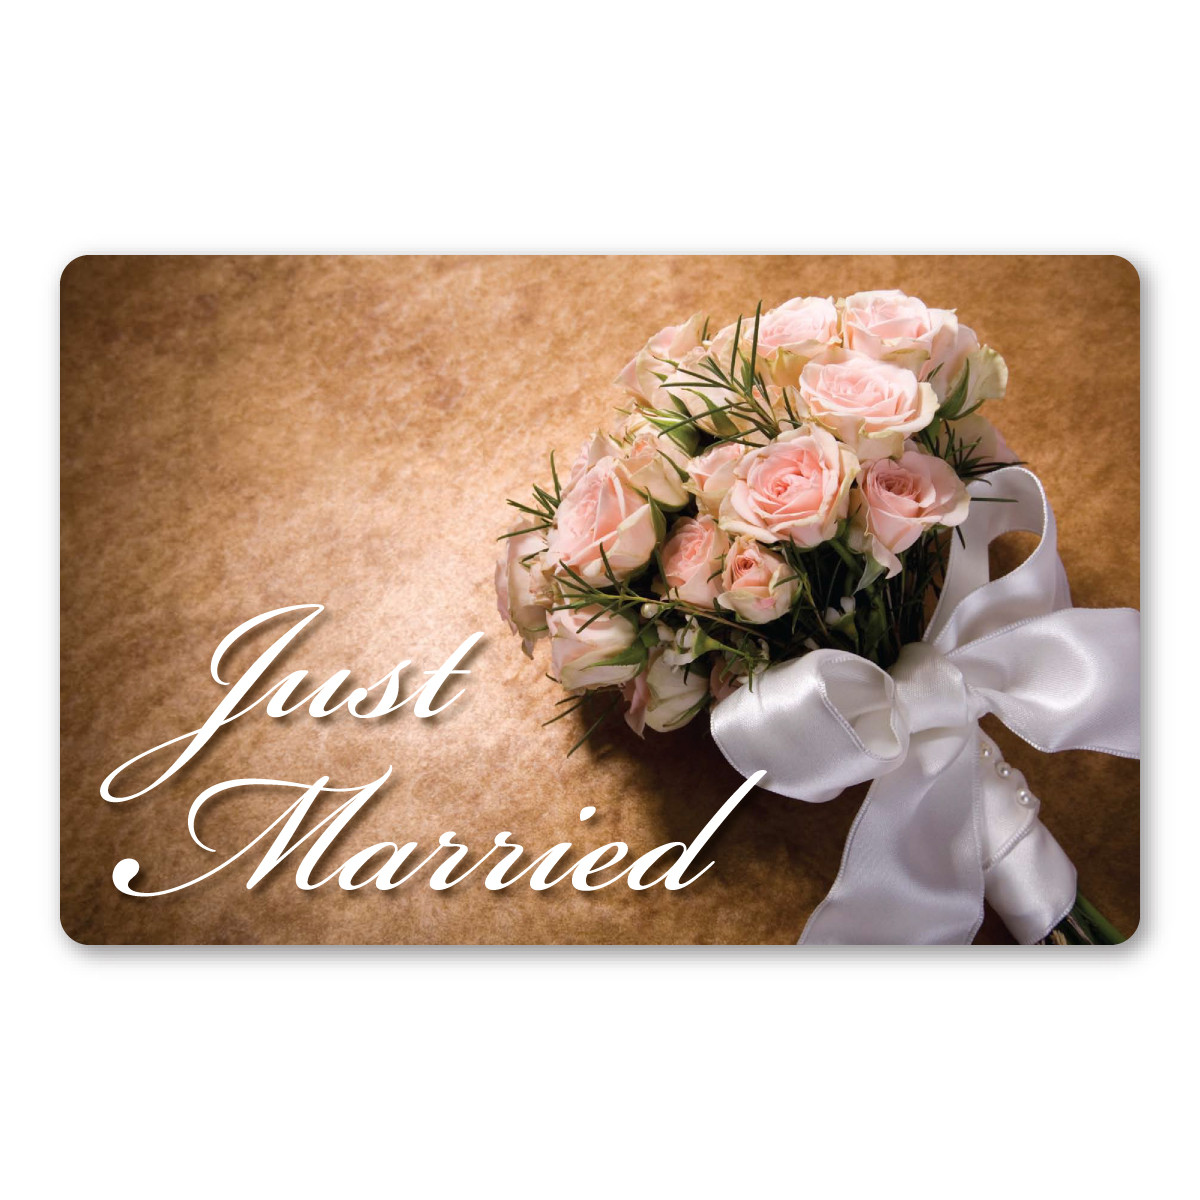 Simple Wedding Car Decoration Ideas: Just Married Flowers Car Sign Magnet